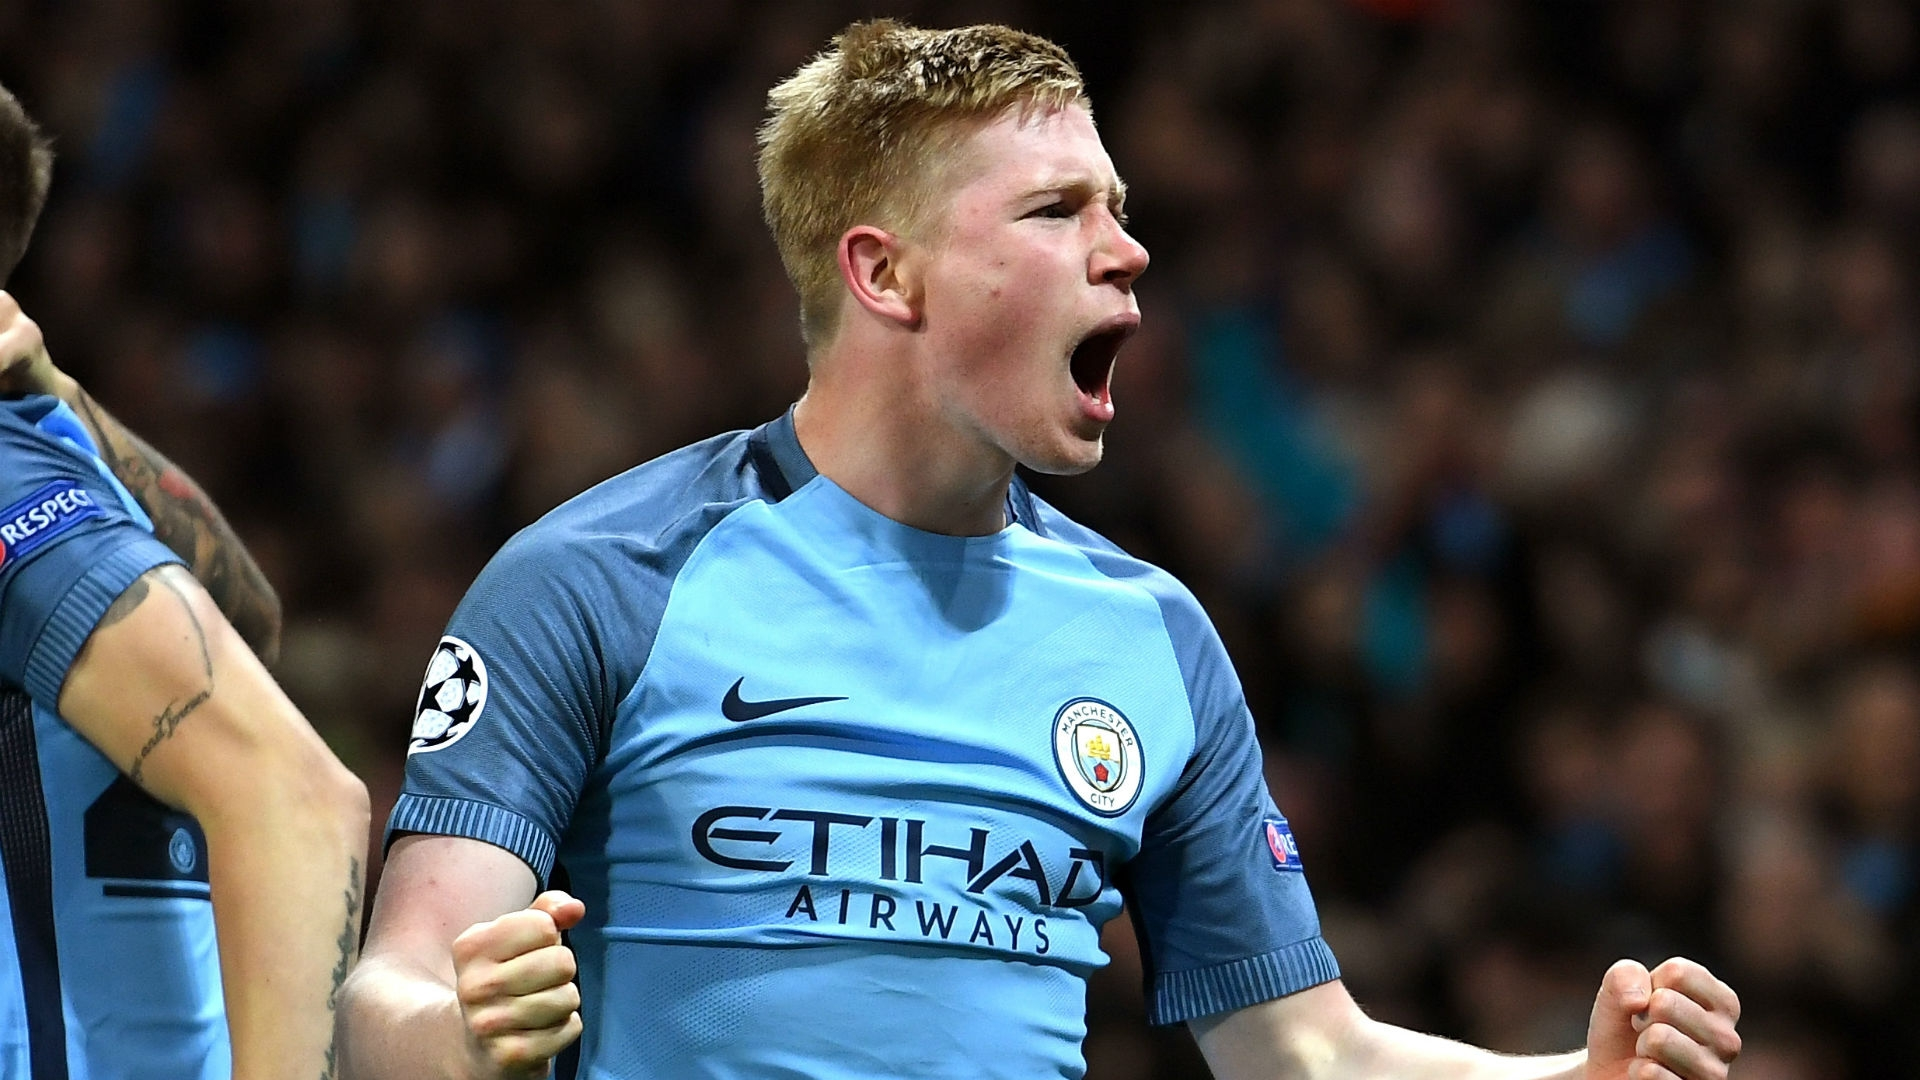 City is among the teams taking part in the International Champions Cup. They've recently managed an impressive 4-1 victory over Real Madrid, but De Bruyne is clear on the fact that the game only serves as a chance to practice for the official fixtures.